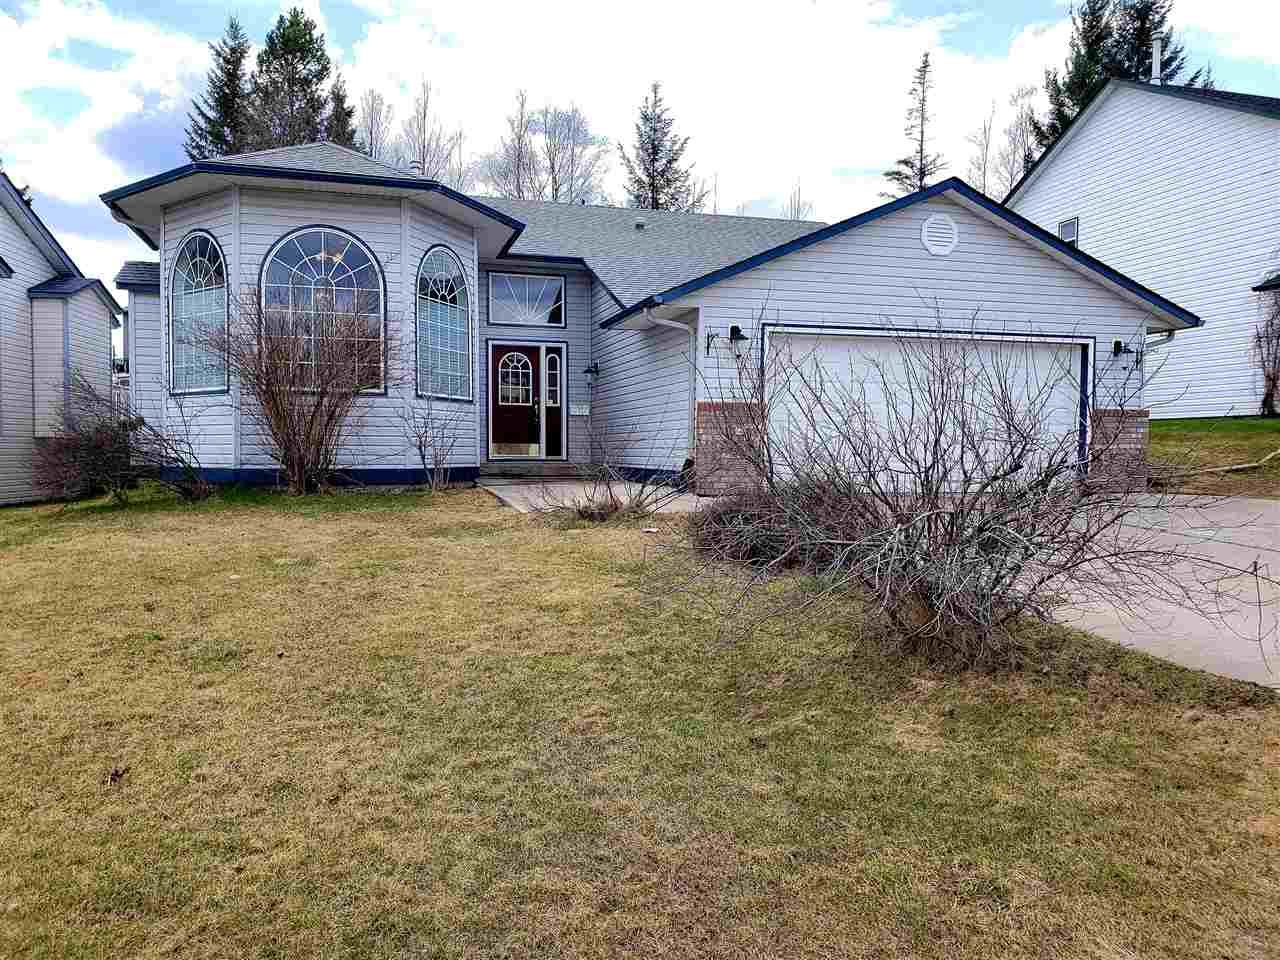 Main Photo: 3190 VISTA RISE Road in Prince George: St. Lawrence Heights House for sale (PG City South (Zone 74))  : MLS®# R2453444